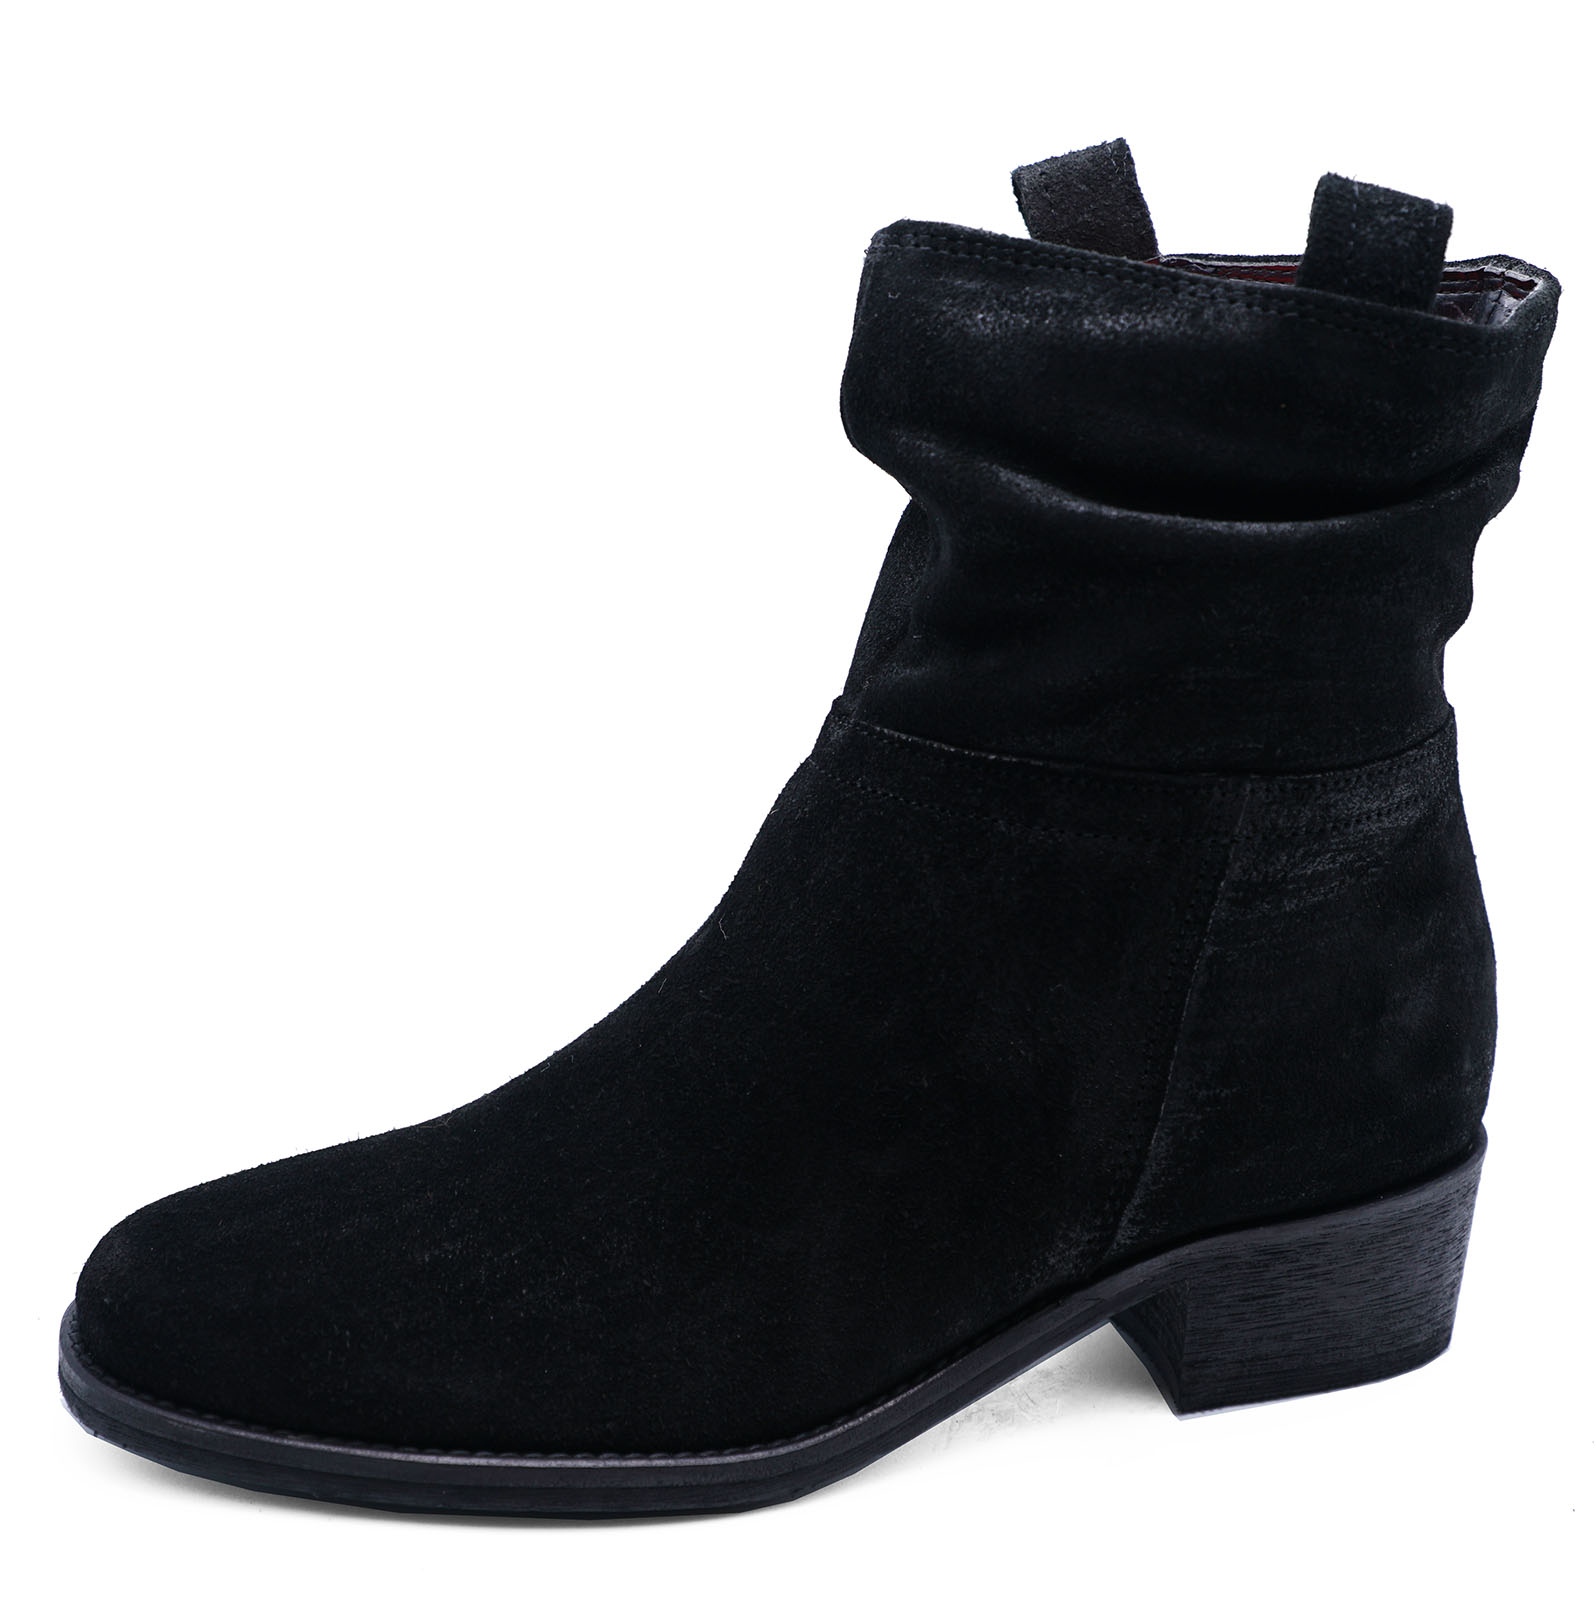 WOMENS-BLACK-GENUINE-SUEDE-LEATHER-SLOUCH-BLACK-BOOTS-SHOES-SIZES-2-9-RRP-55